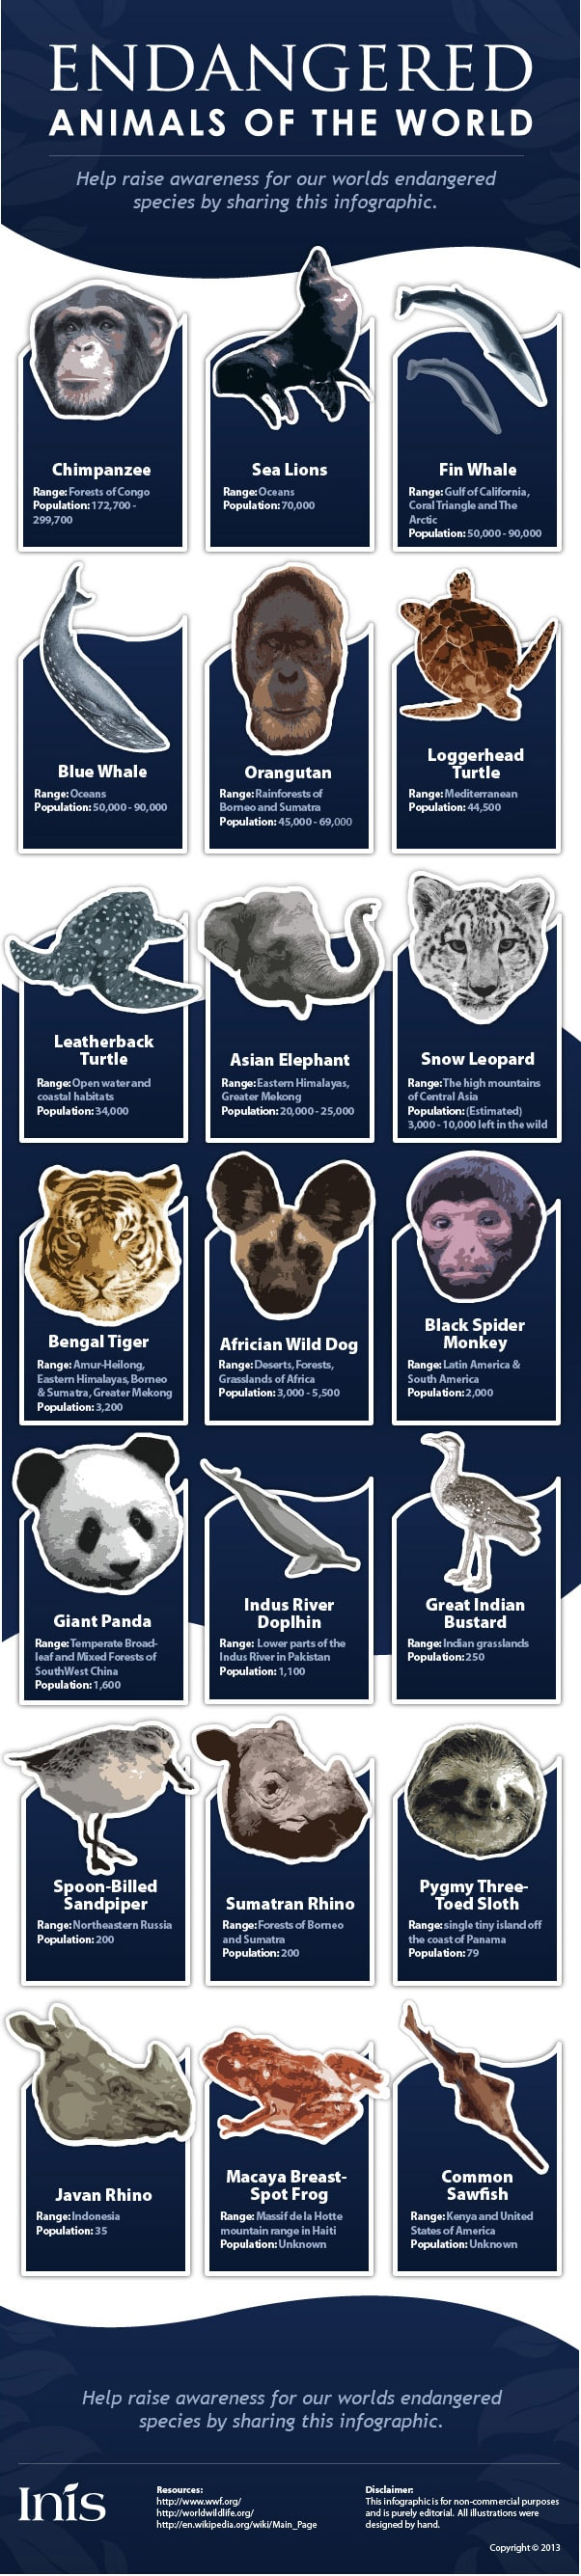 Endangered animals infographic